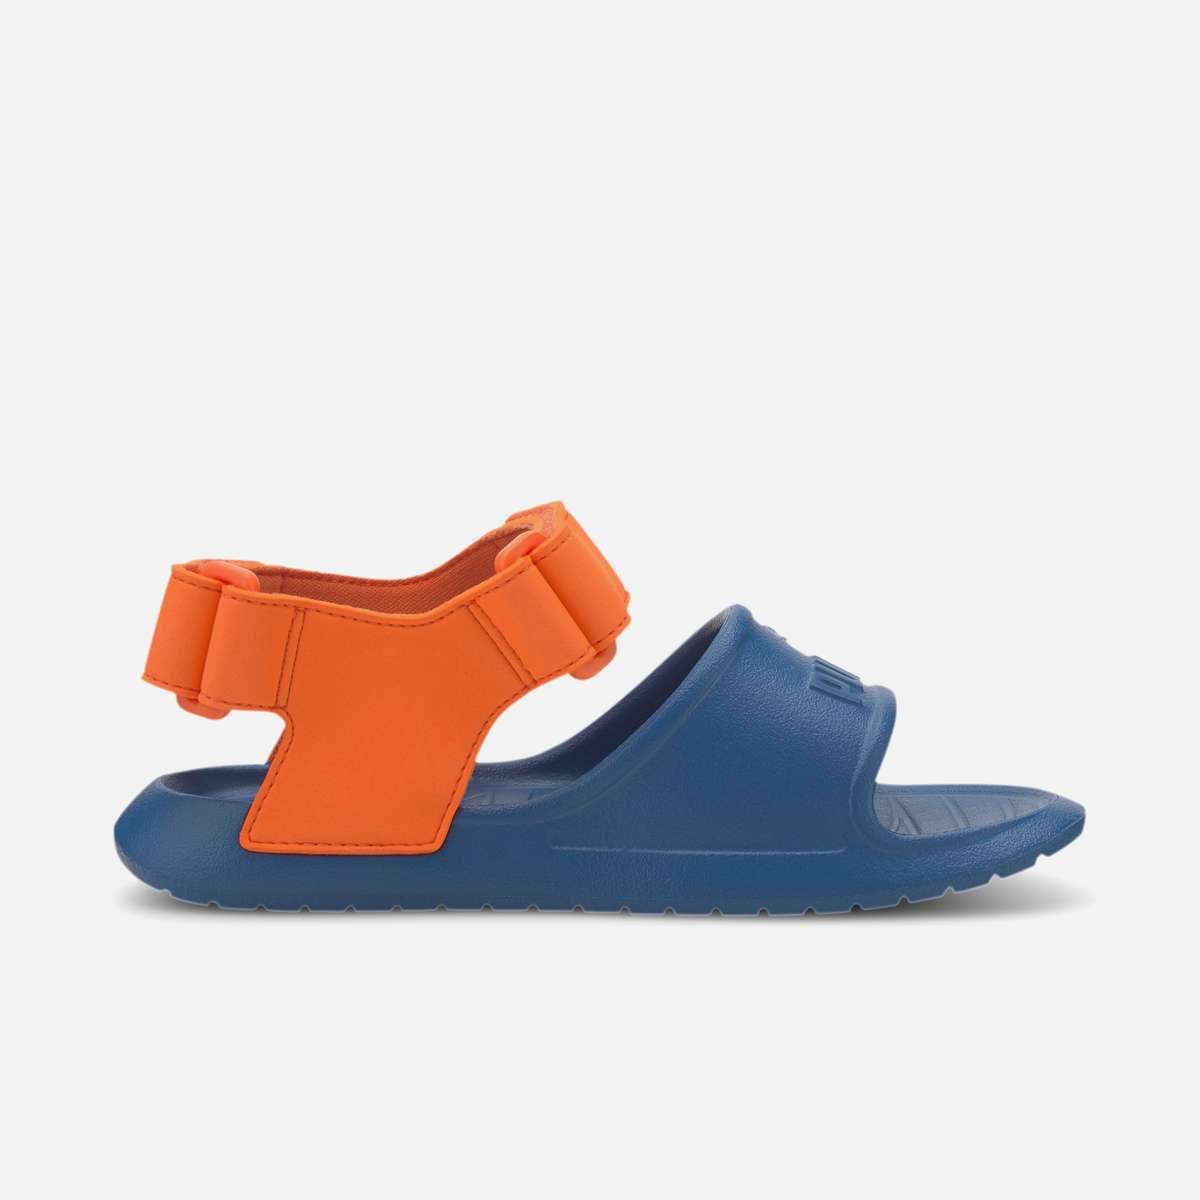 PUMA Colourblocked Velccro-Strap Sandals